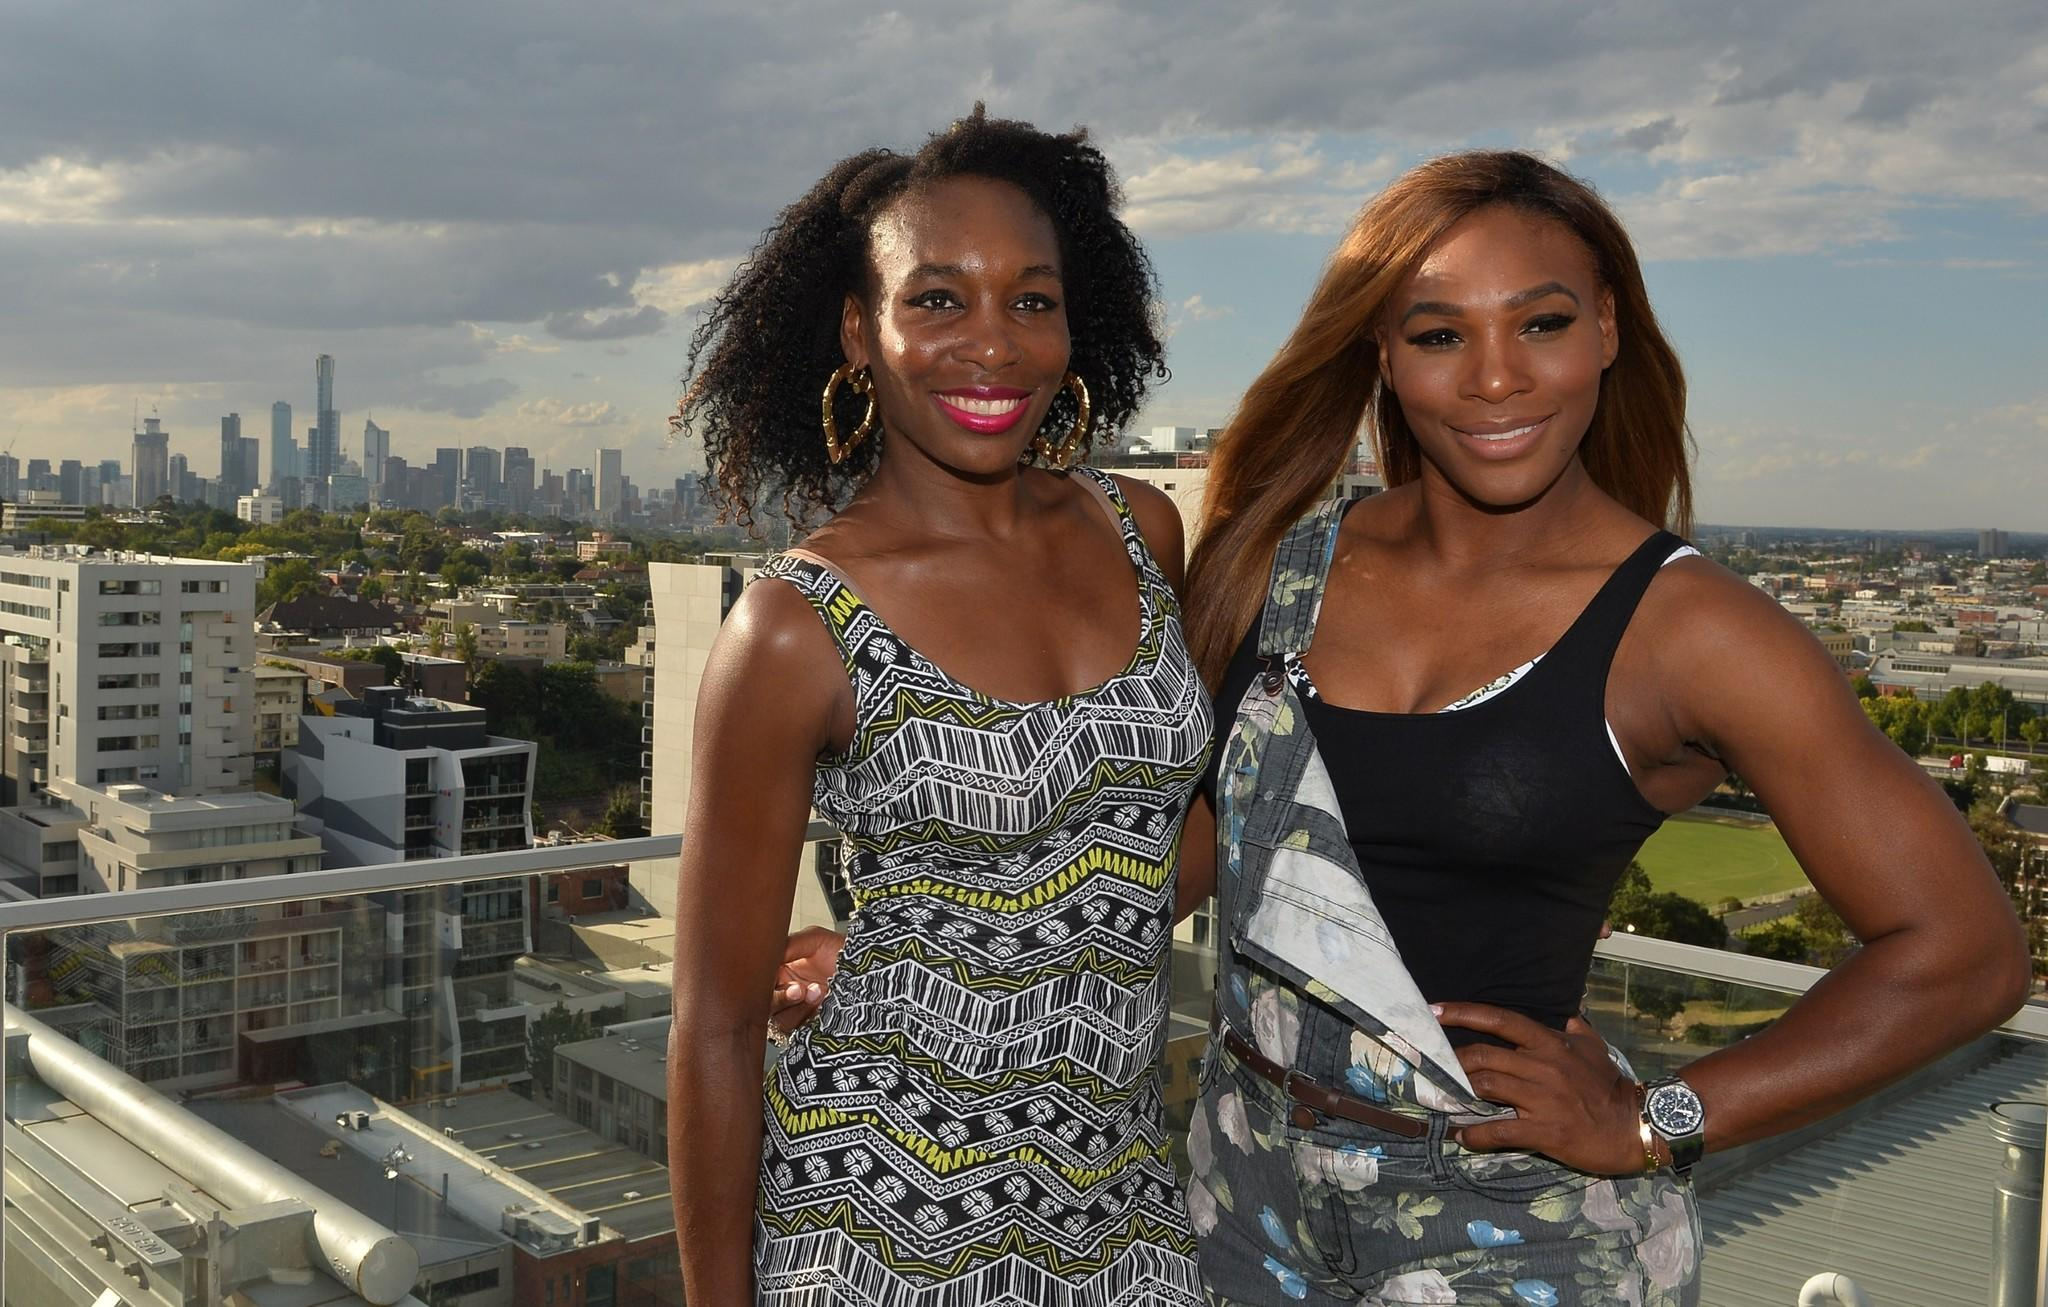 Serena Williams and sister Venus pose for a portrait on the rooftop of a city hotel during a media event for the upcoming Australian Open in Melbourne.